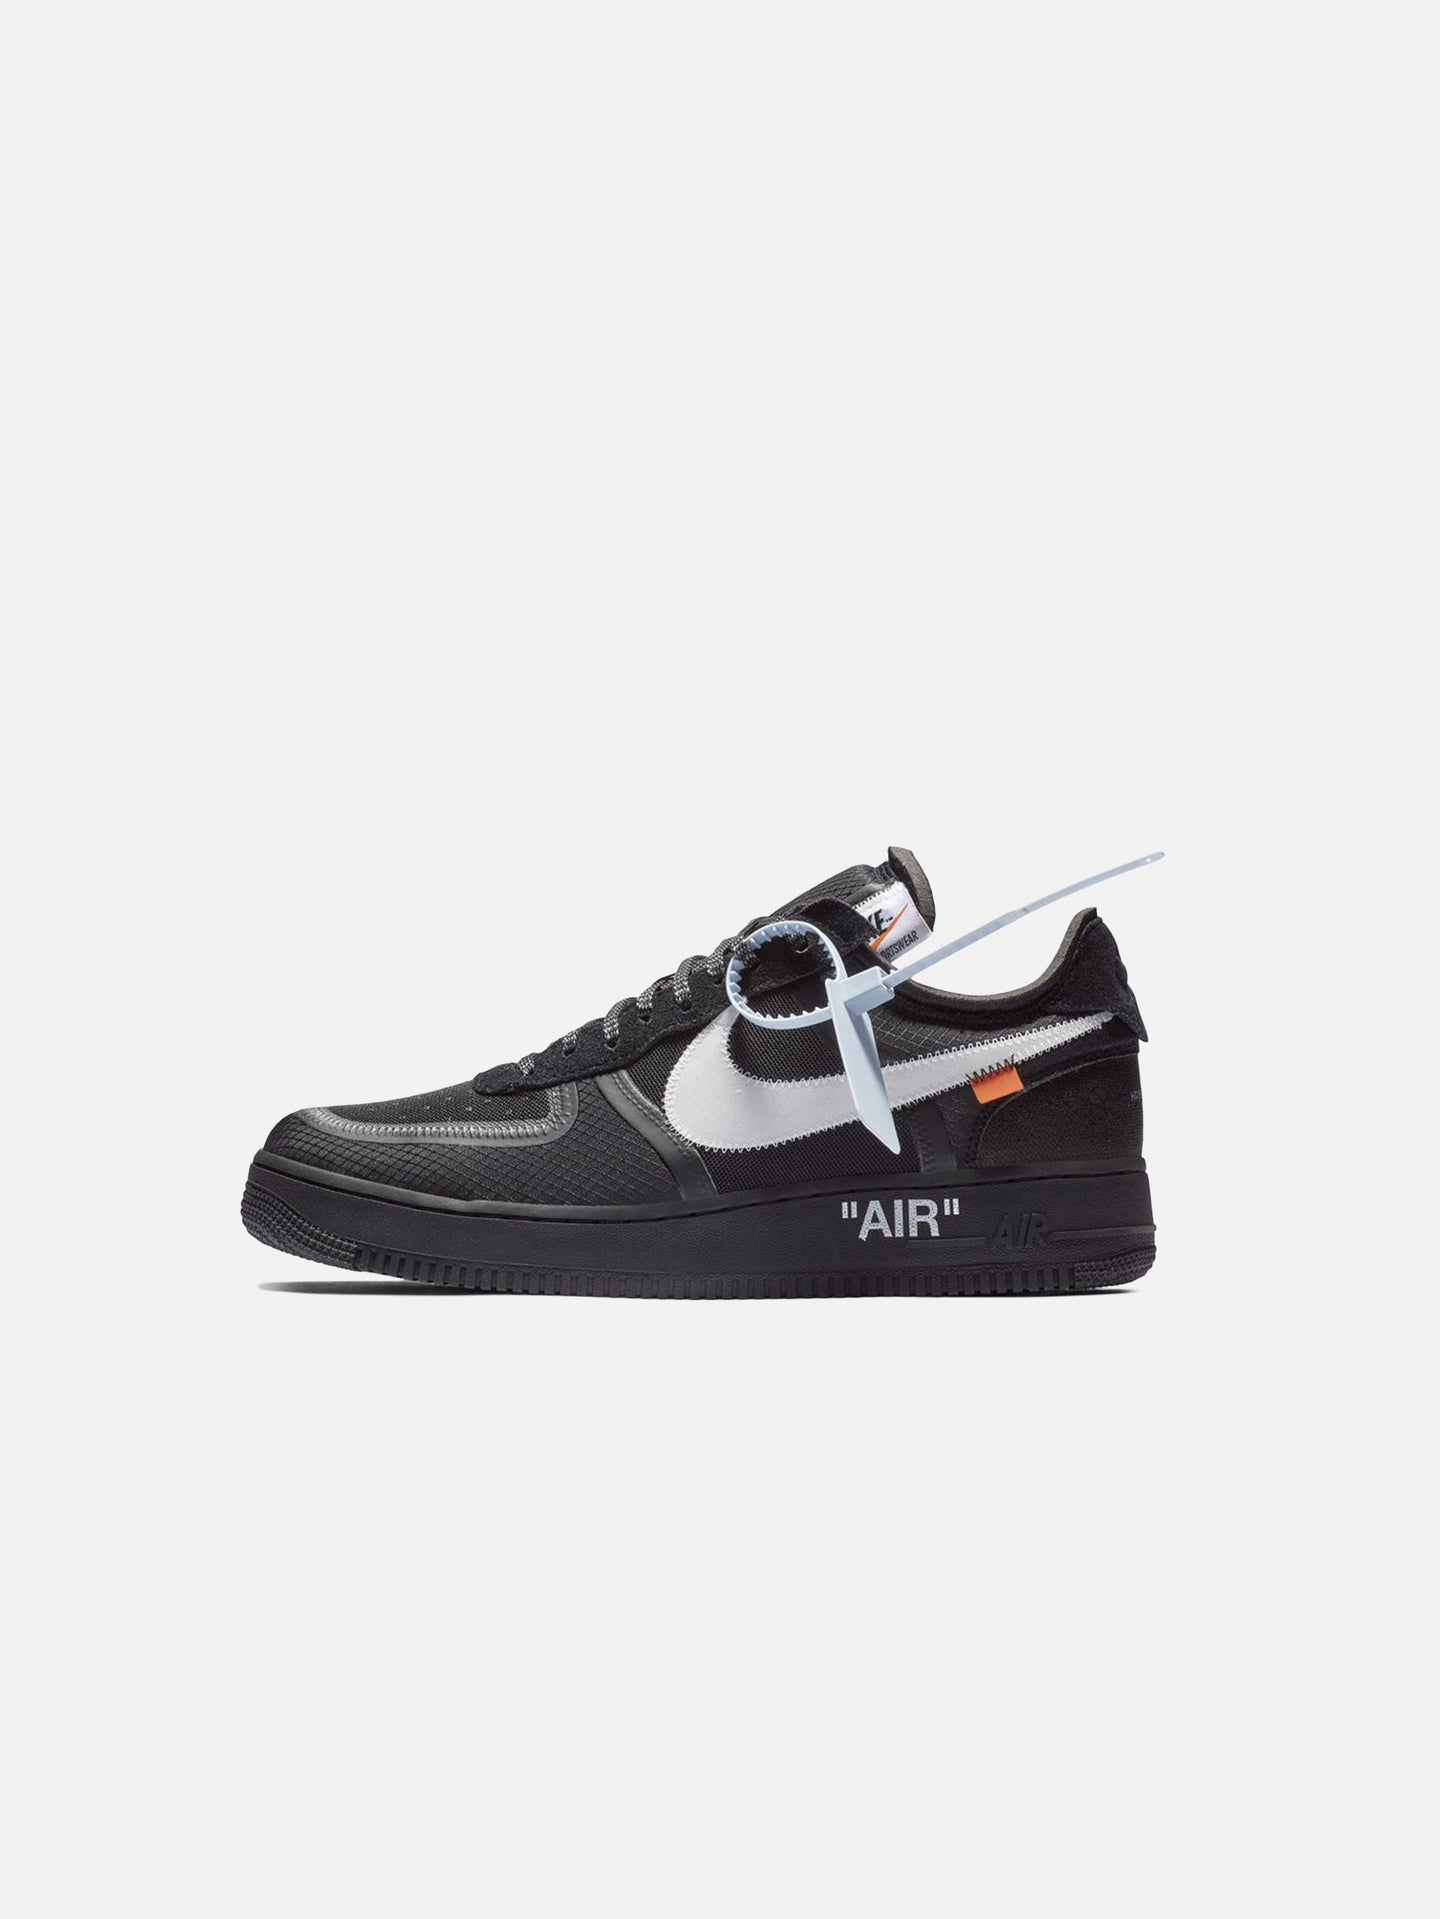 x OFF-WHITE™ AIR FORCE 1: BLACK